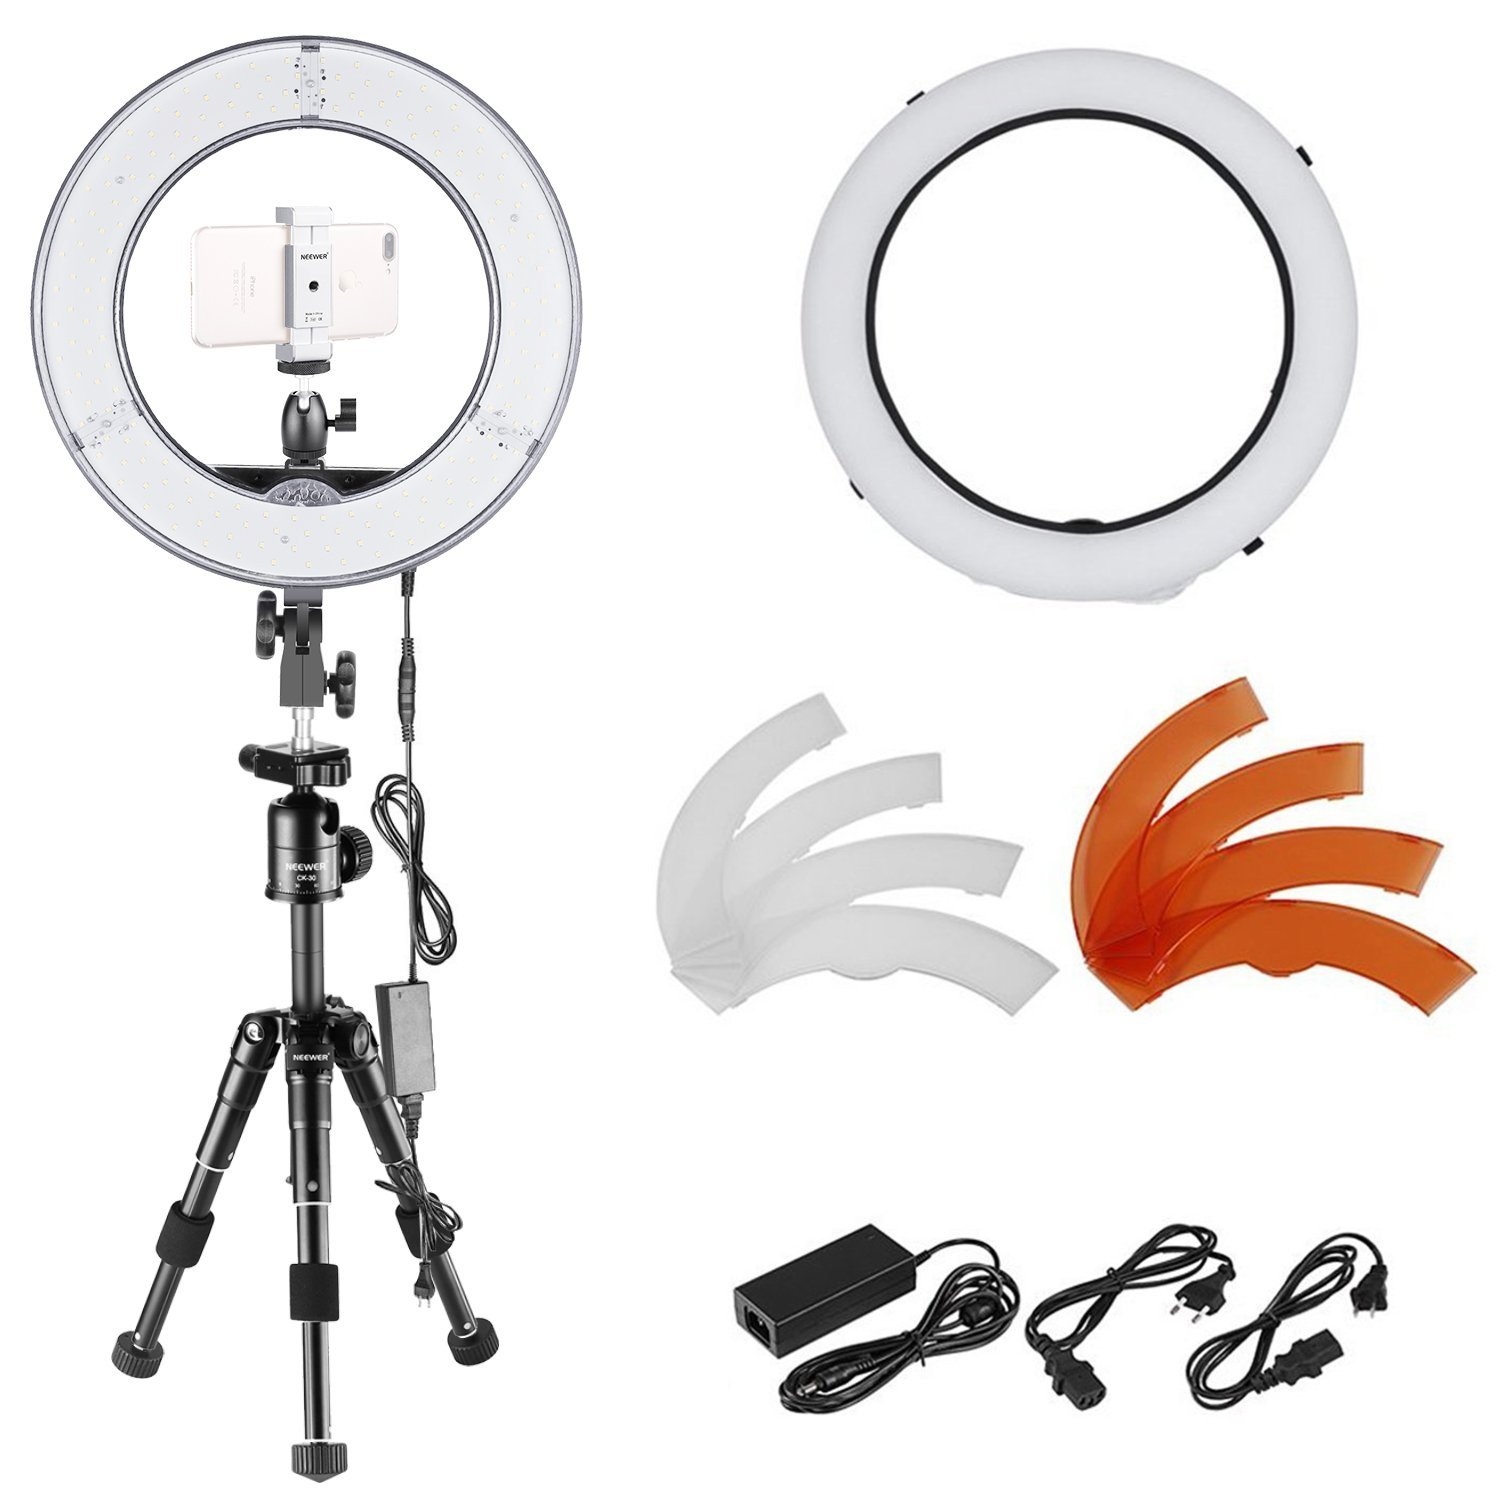 Neewer Ring Light LED 14-inch Dimmable with Tabletop Tripod lighting kit: 36W 180 Pieces LED Ring Video Light,Tripod,Phone Holder,Diffuser for Portrait Product Photography YouTube Video recording by Neewer